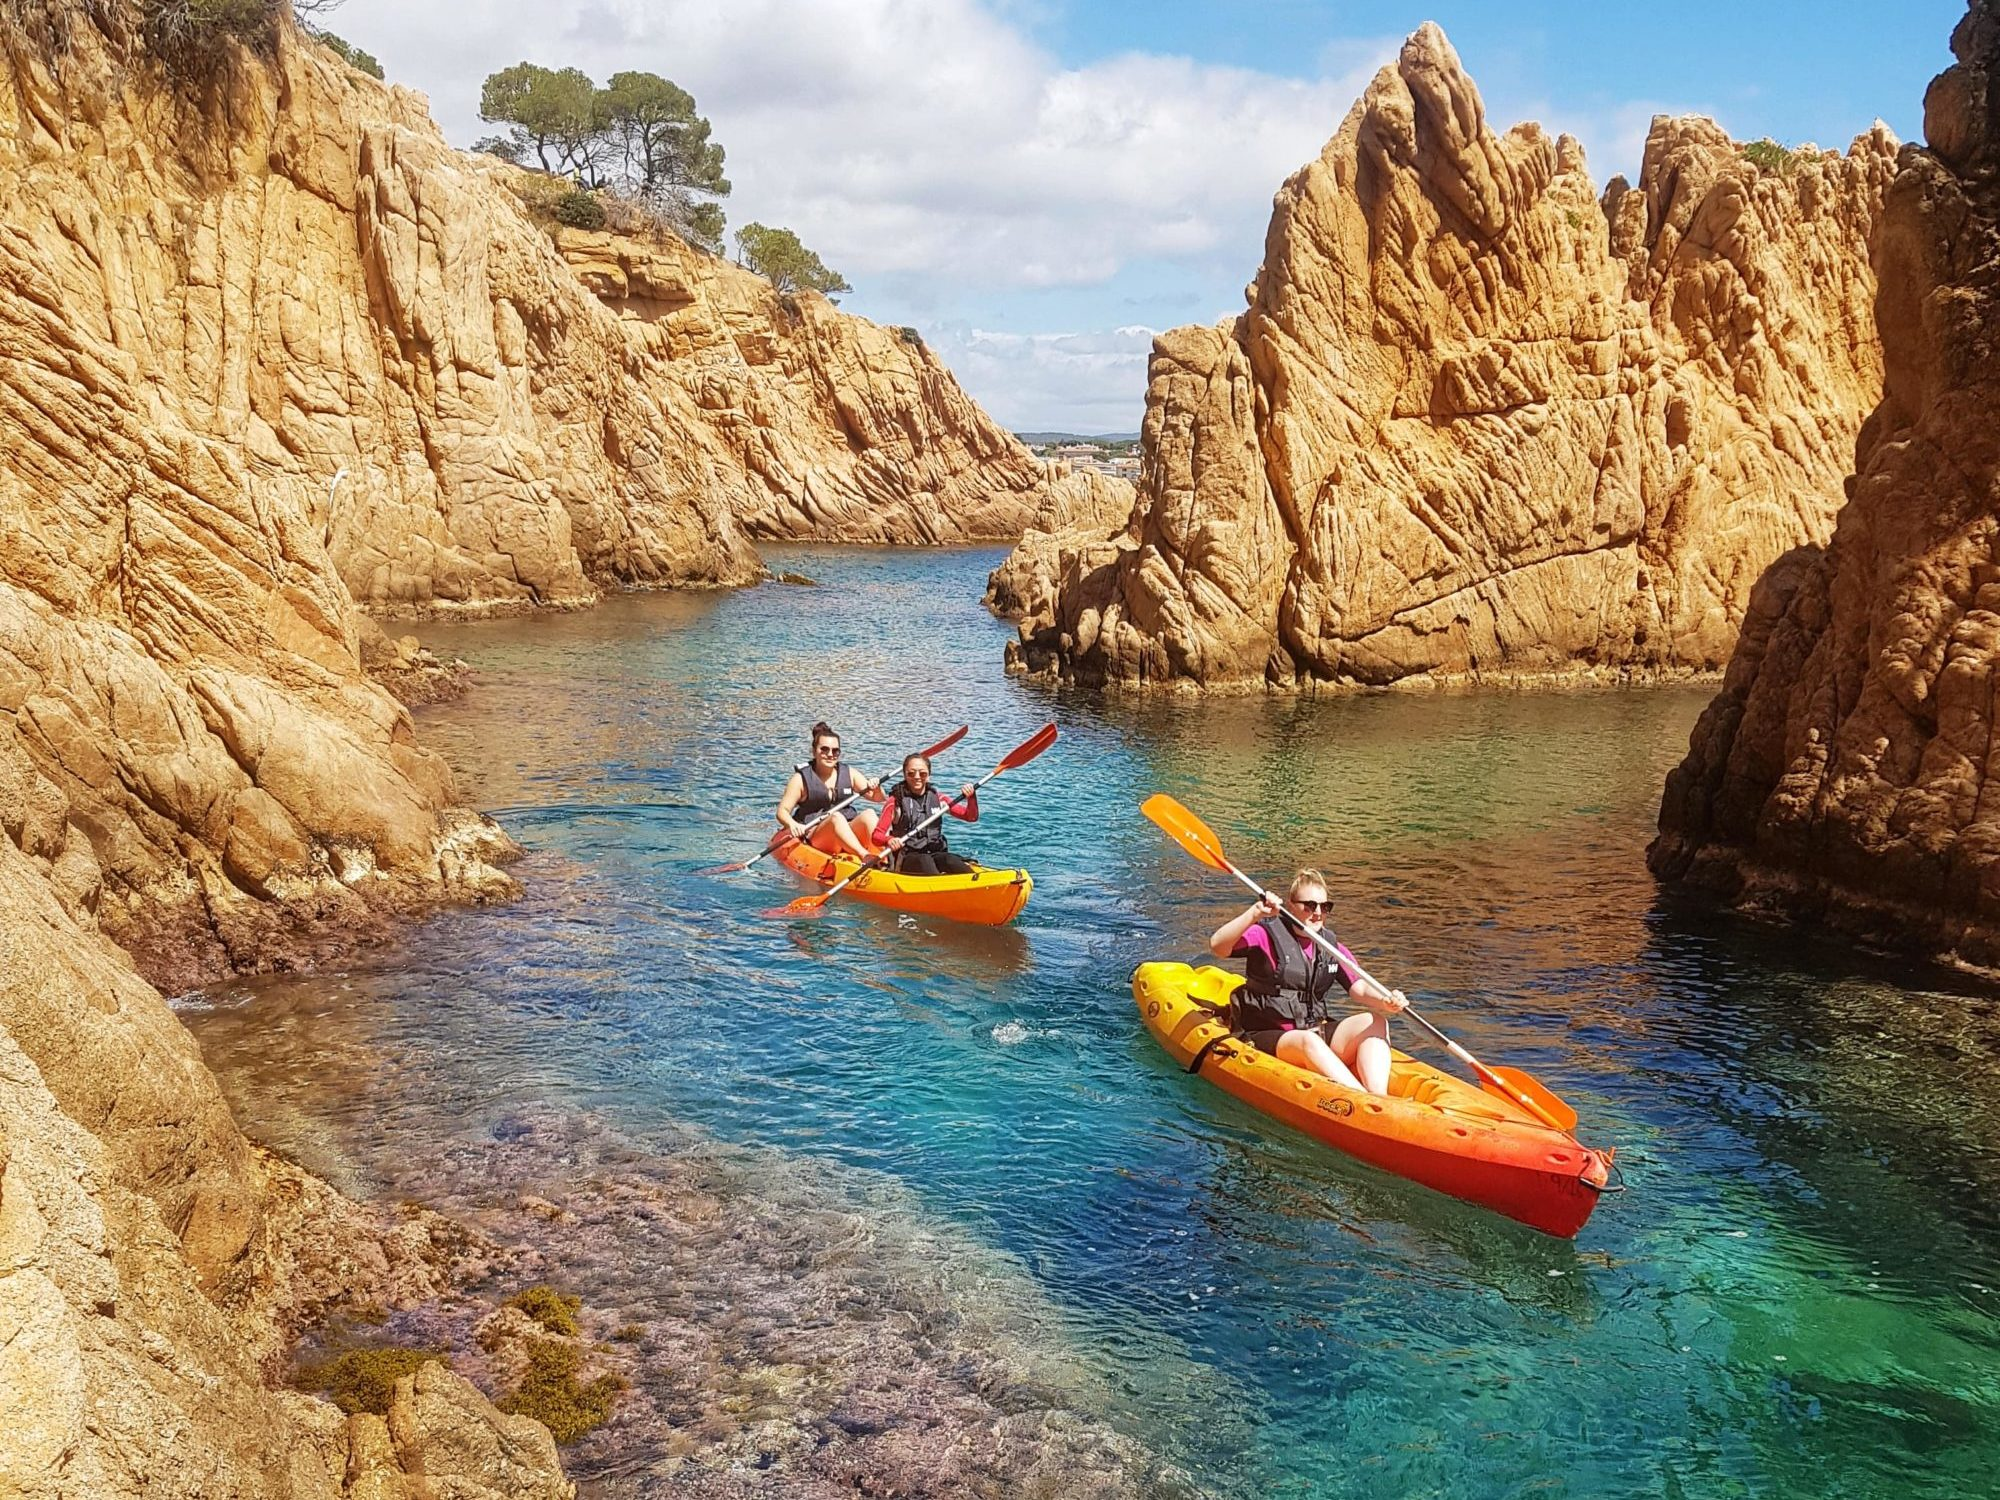 Propel among beautiful sand rock formations in the Costa Brava